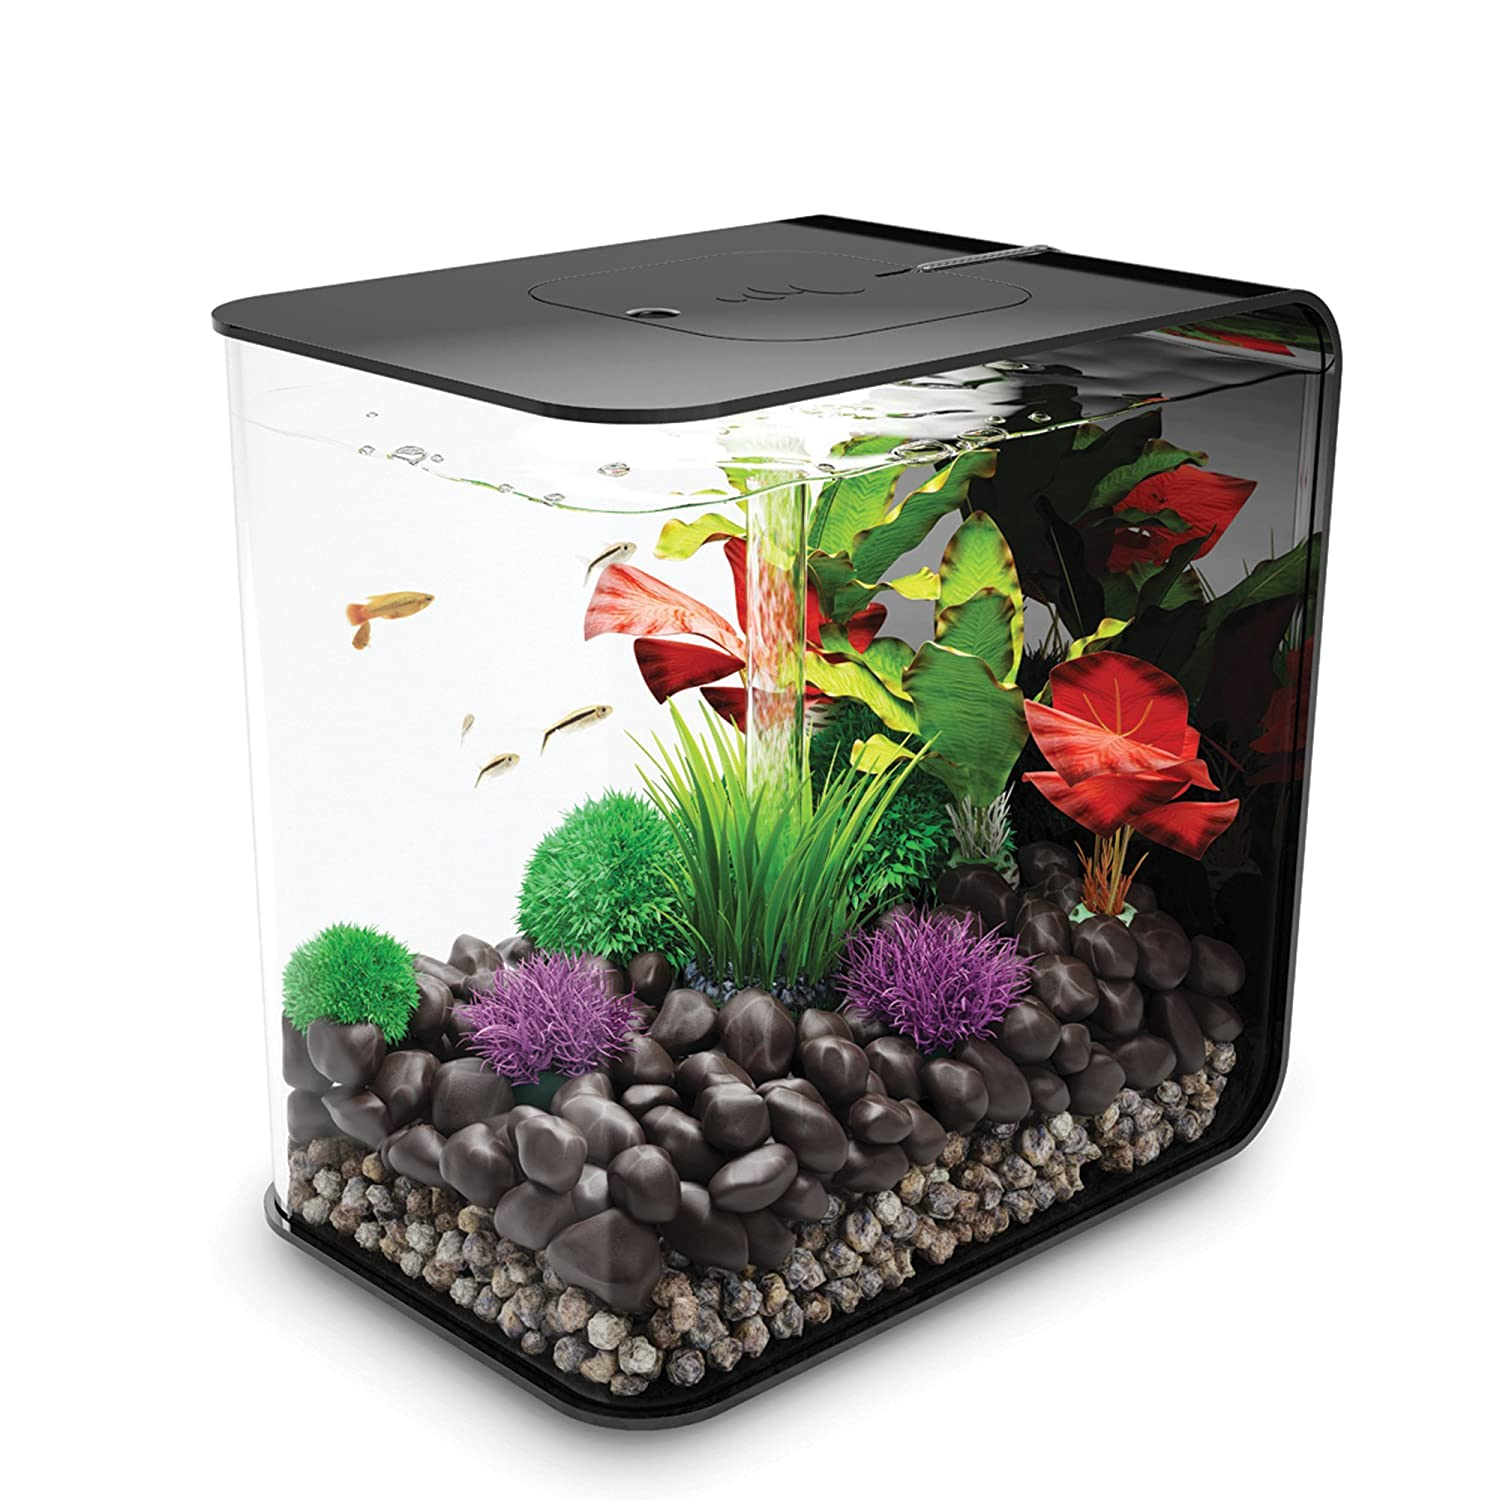 BiOrb FLOW 30 Aquarium with LED Light 8 Gallon, Black by biOrb